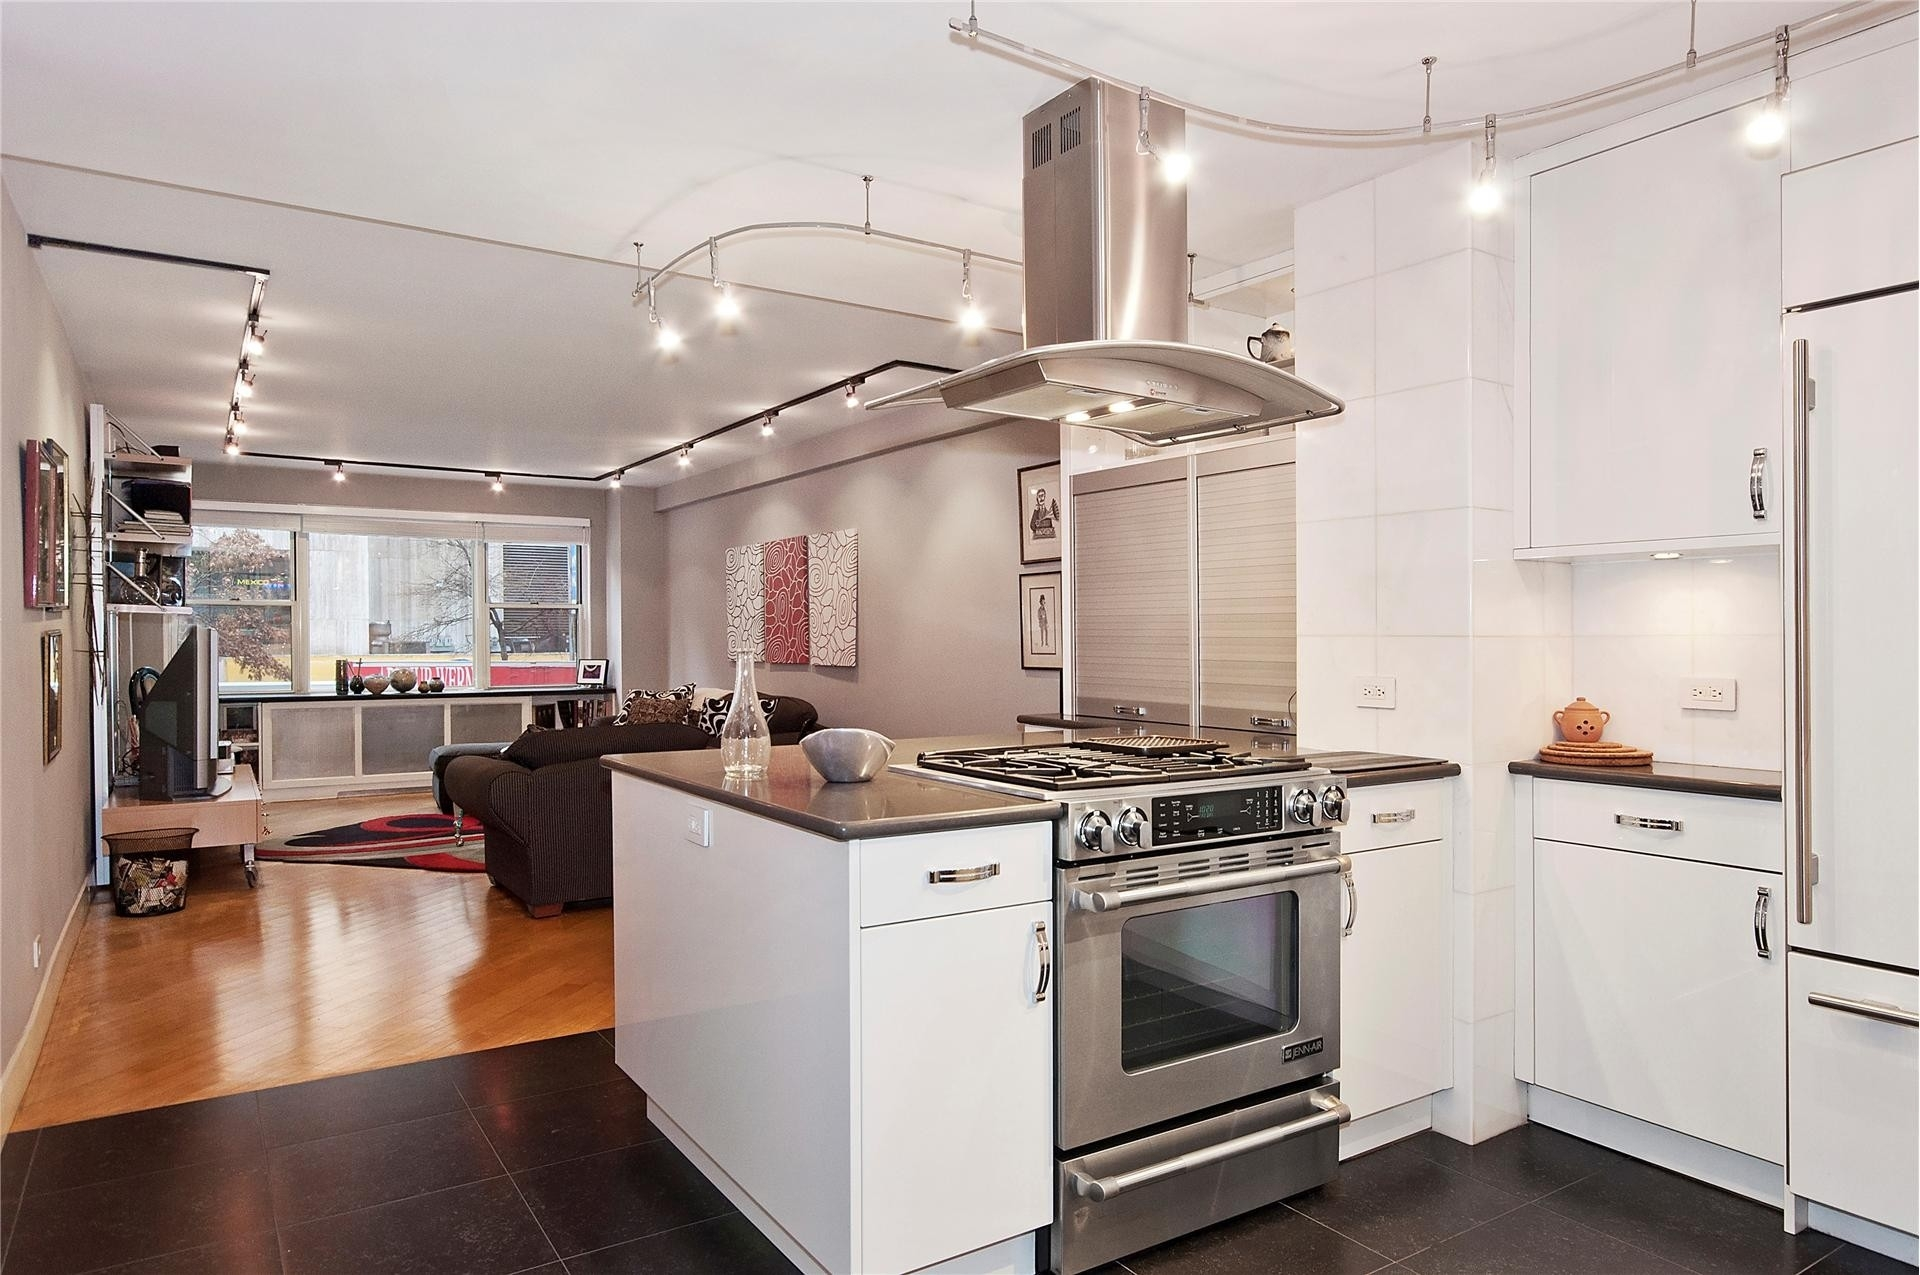 Property at 201 East 37th St, 2GH Murray Hill, New York